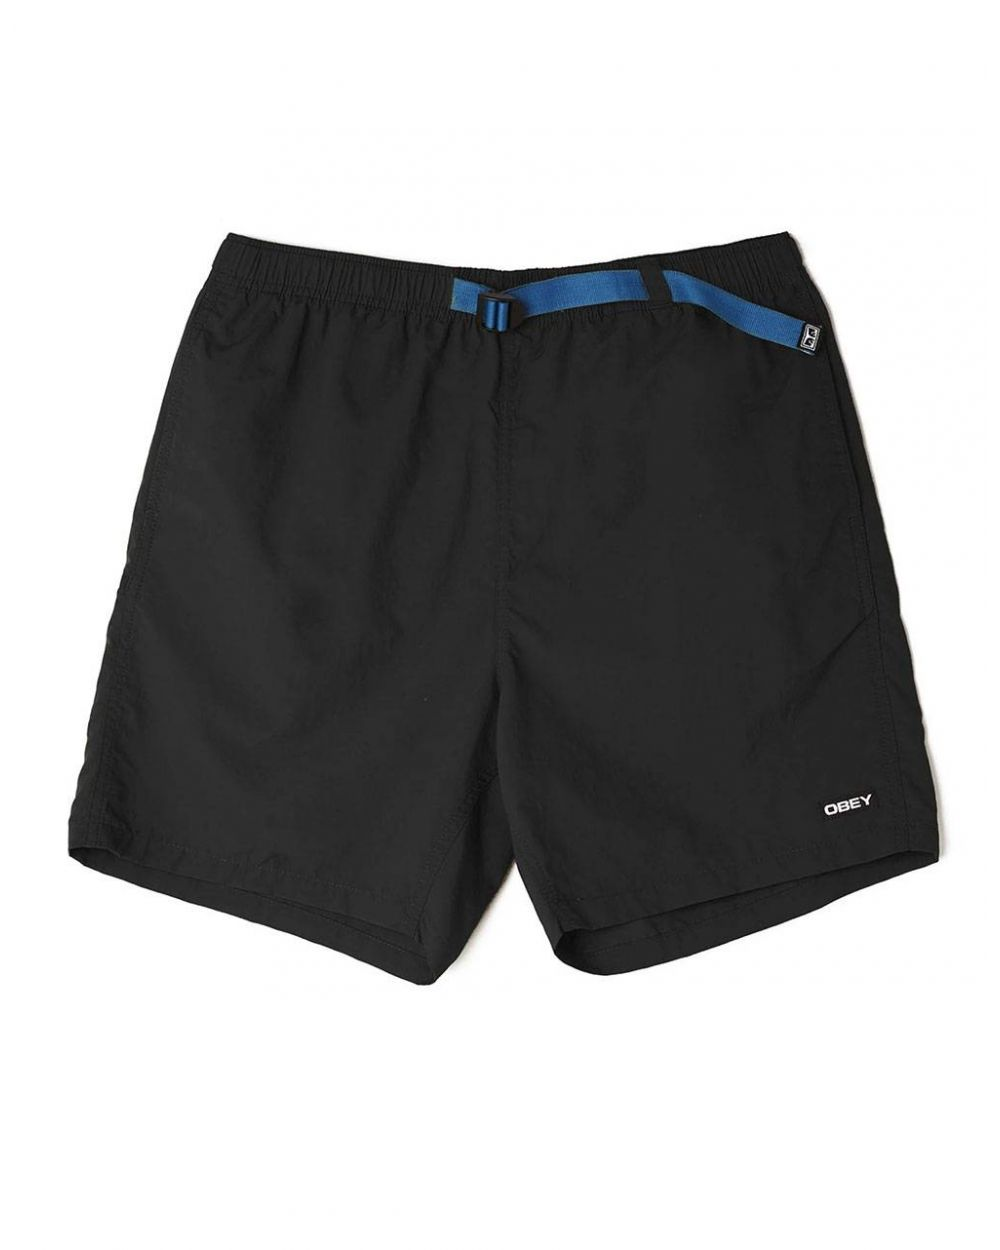 Obey Easy relaxed trek shorts - black obey Shorts 79,00€